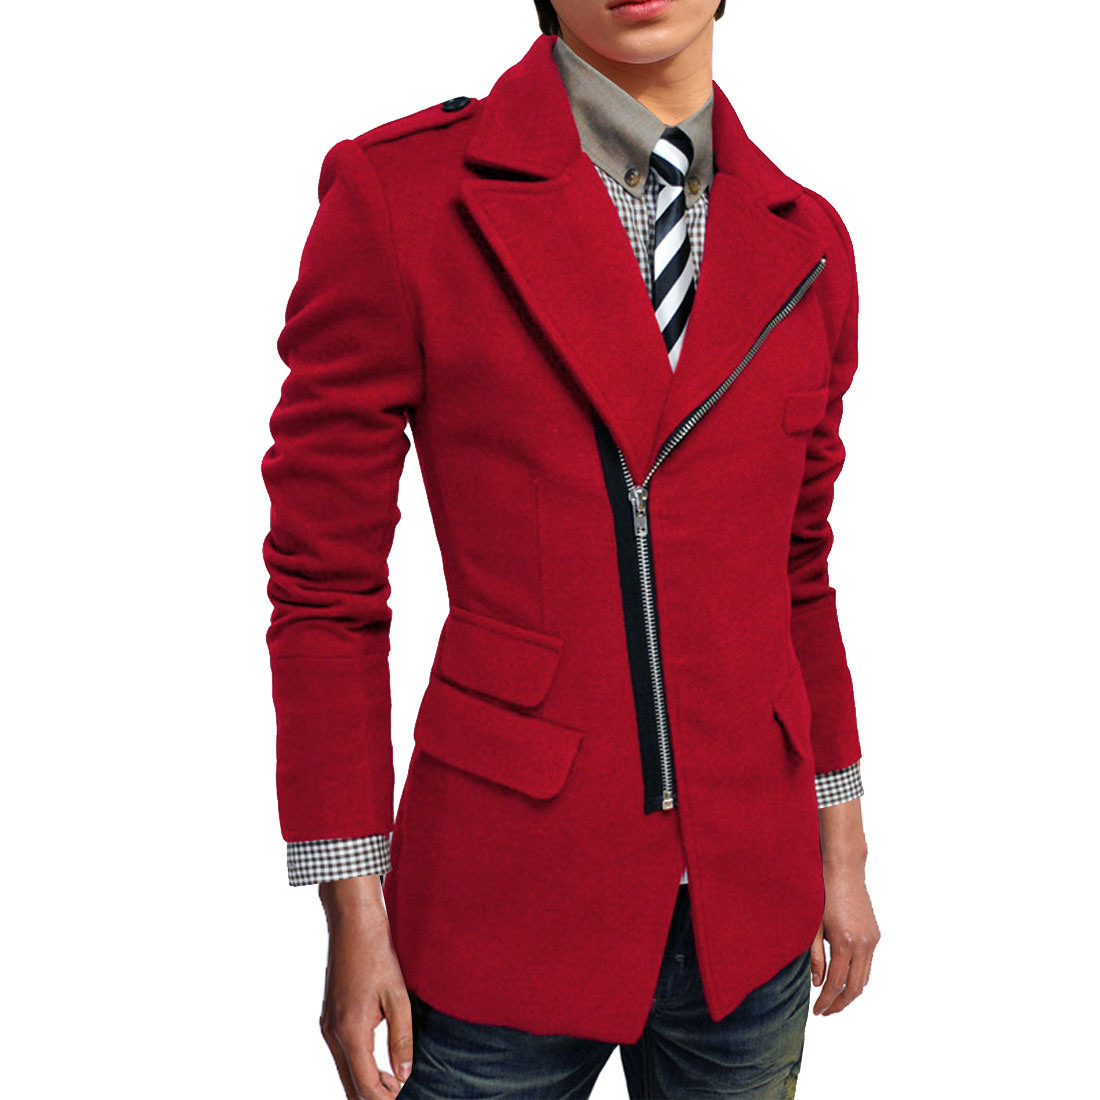 Men M Red Long Sleeve Zip Closure Patch Pockets Skinny Casual Jacket